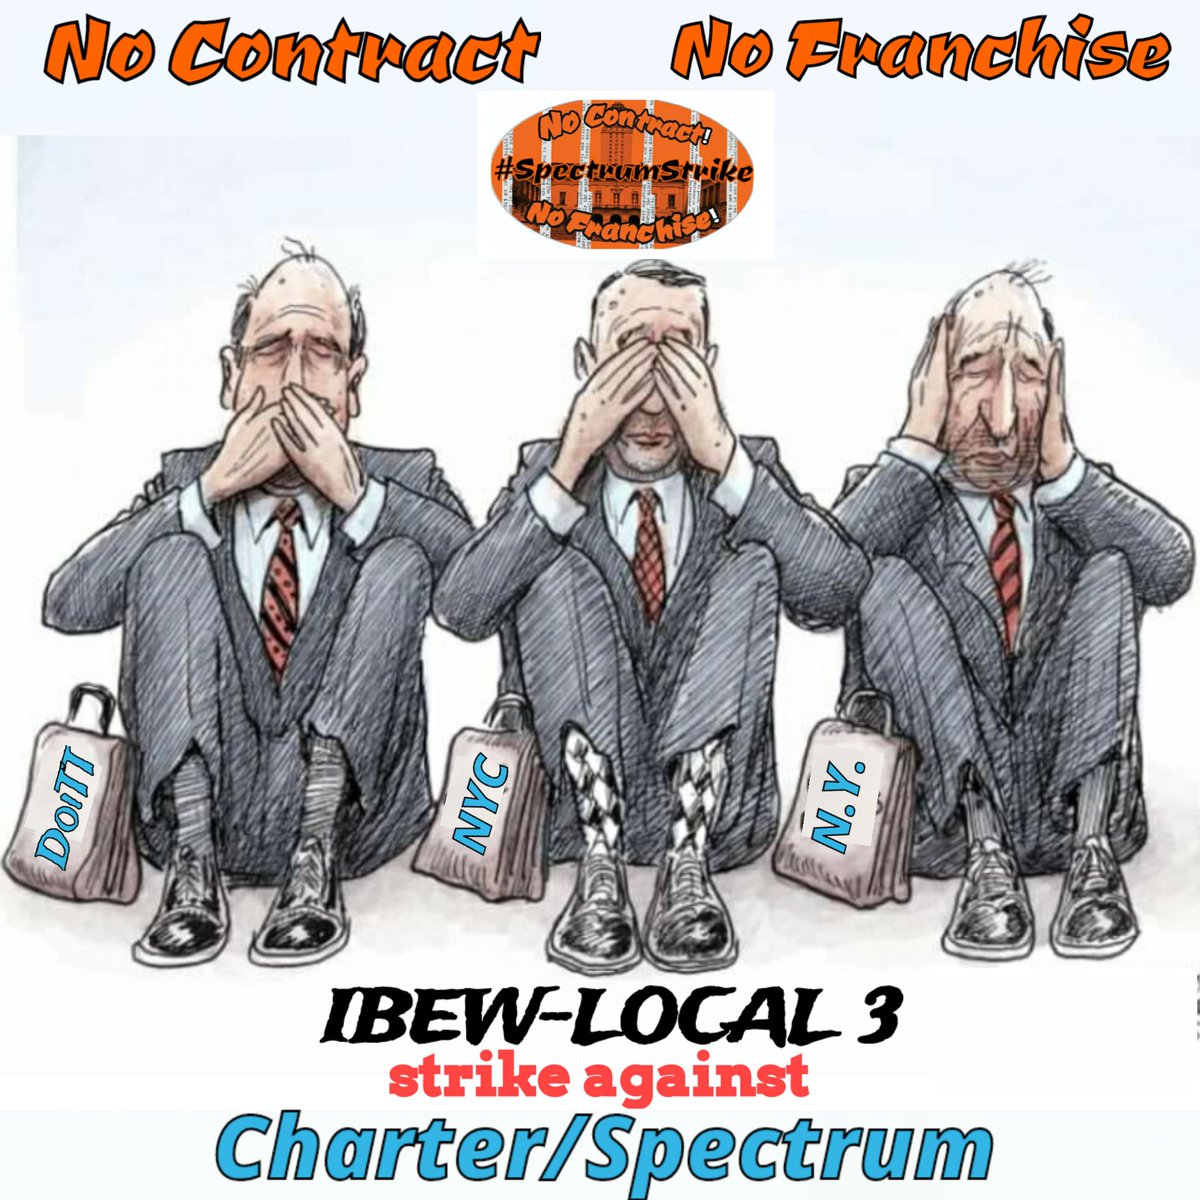 Day1194 Brothas & Sisthas these officials in place, are there to prevent: Fraud; Lies & union busting. However-  they're playing: Dumb; Blind & Deaf. 3 plus years of sitting back & watching #SpectrumStrike #Local3 #FairContractNow #corporategreed #NoContractNoFranchise2020<br>http://pic.twitter.com/bgXABJHLSc